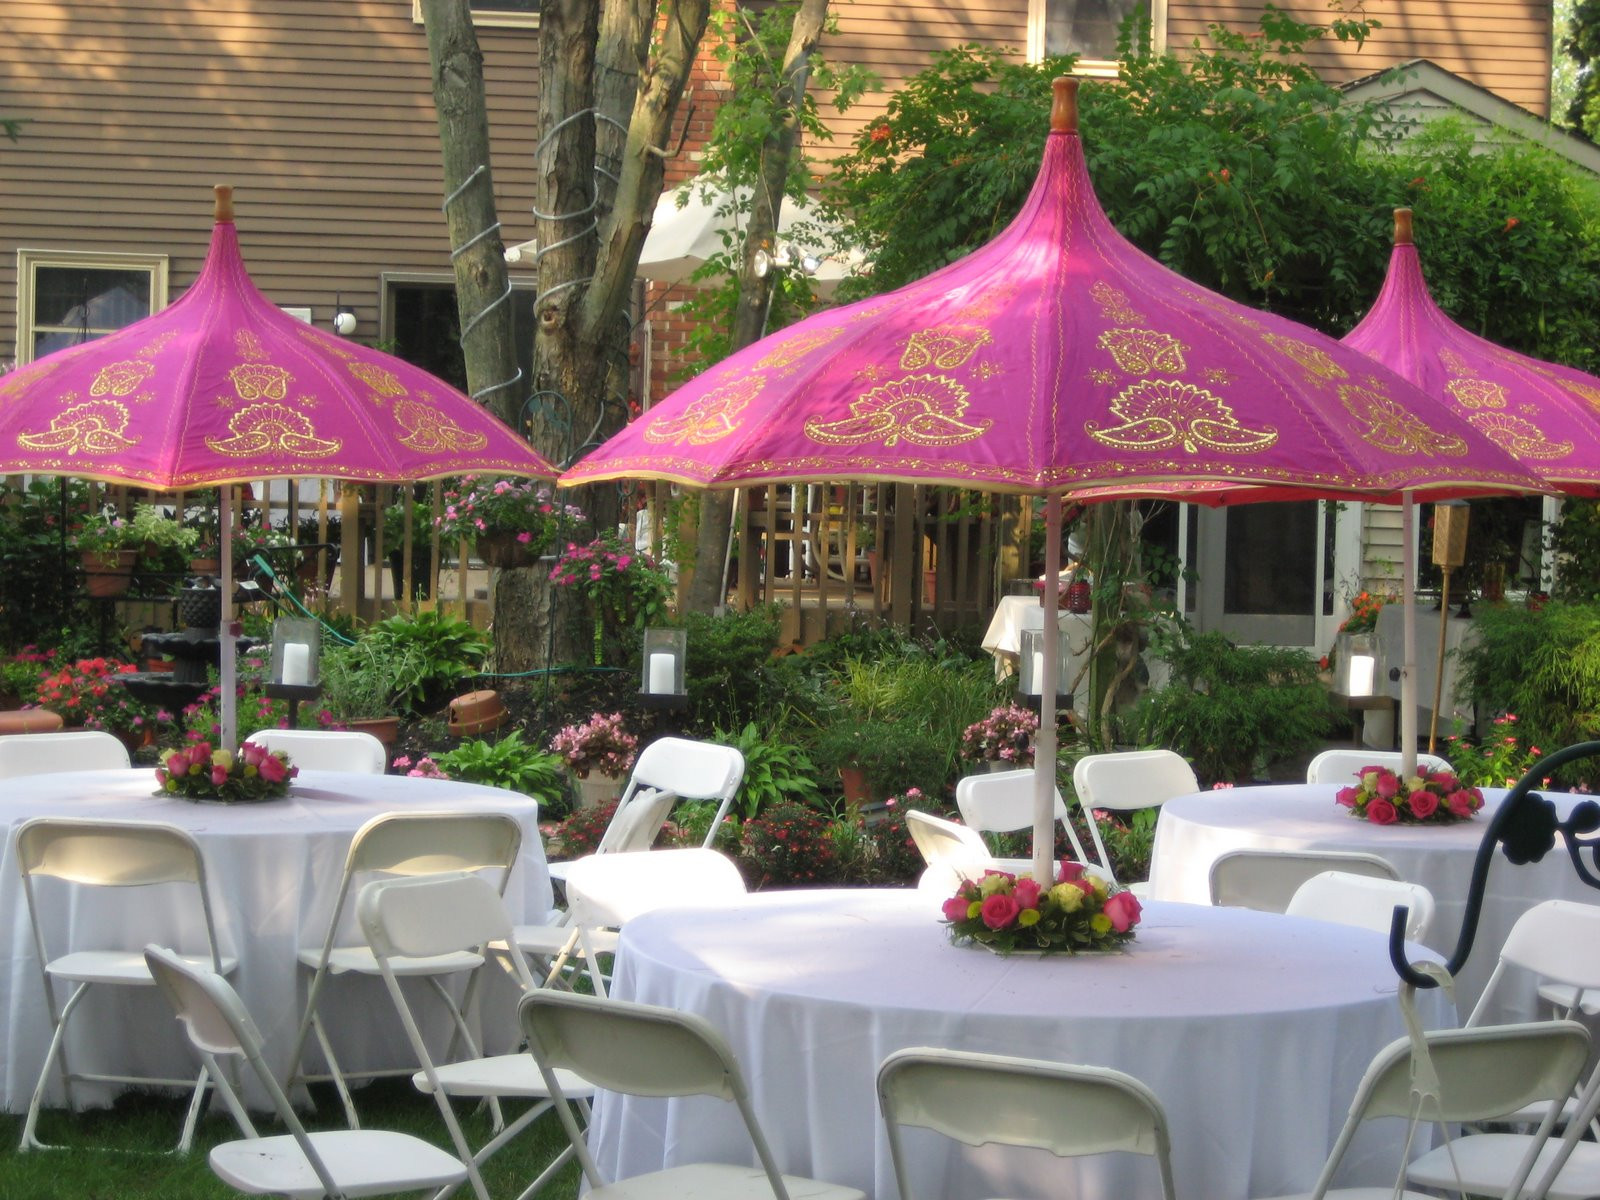 Backyard Summer Party Decorating Ideas  37 Table Decoration Ideas For A Summer Garden Party